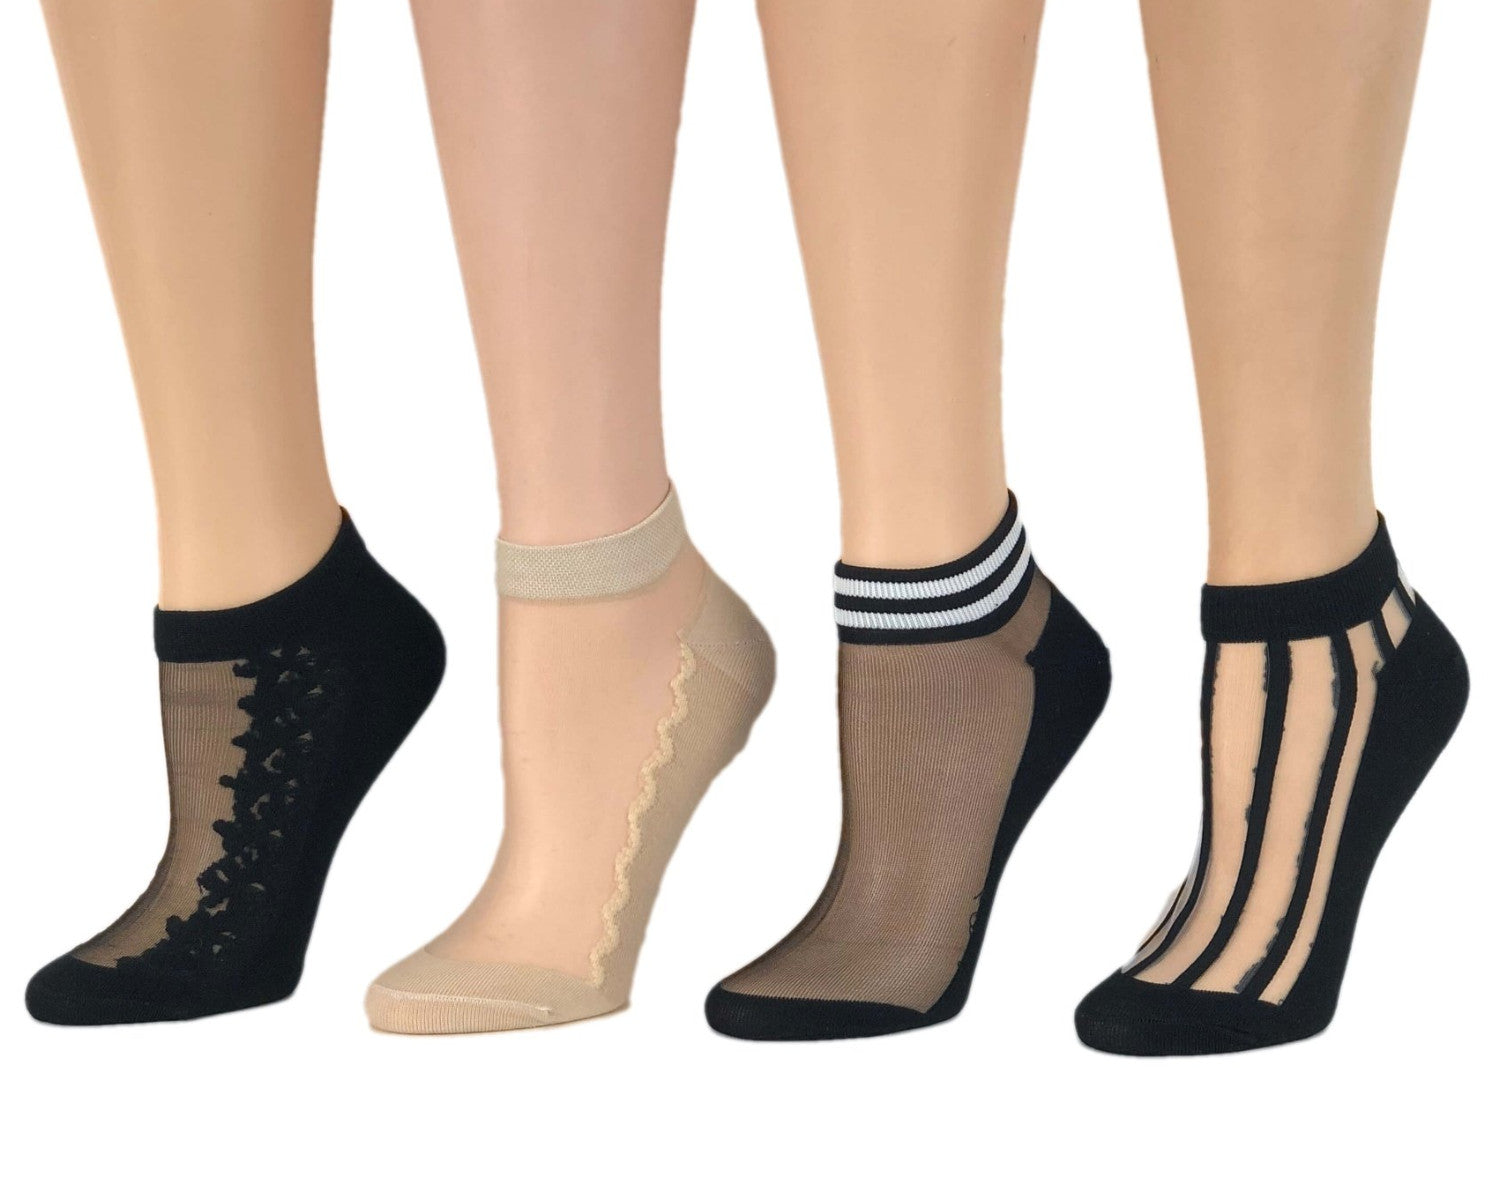 Various Designed Sheer Socks (Pack of 4 Pairs) - Global Trendz Fashion®